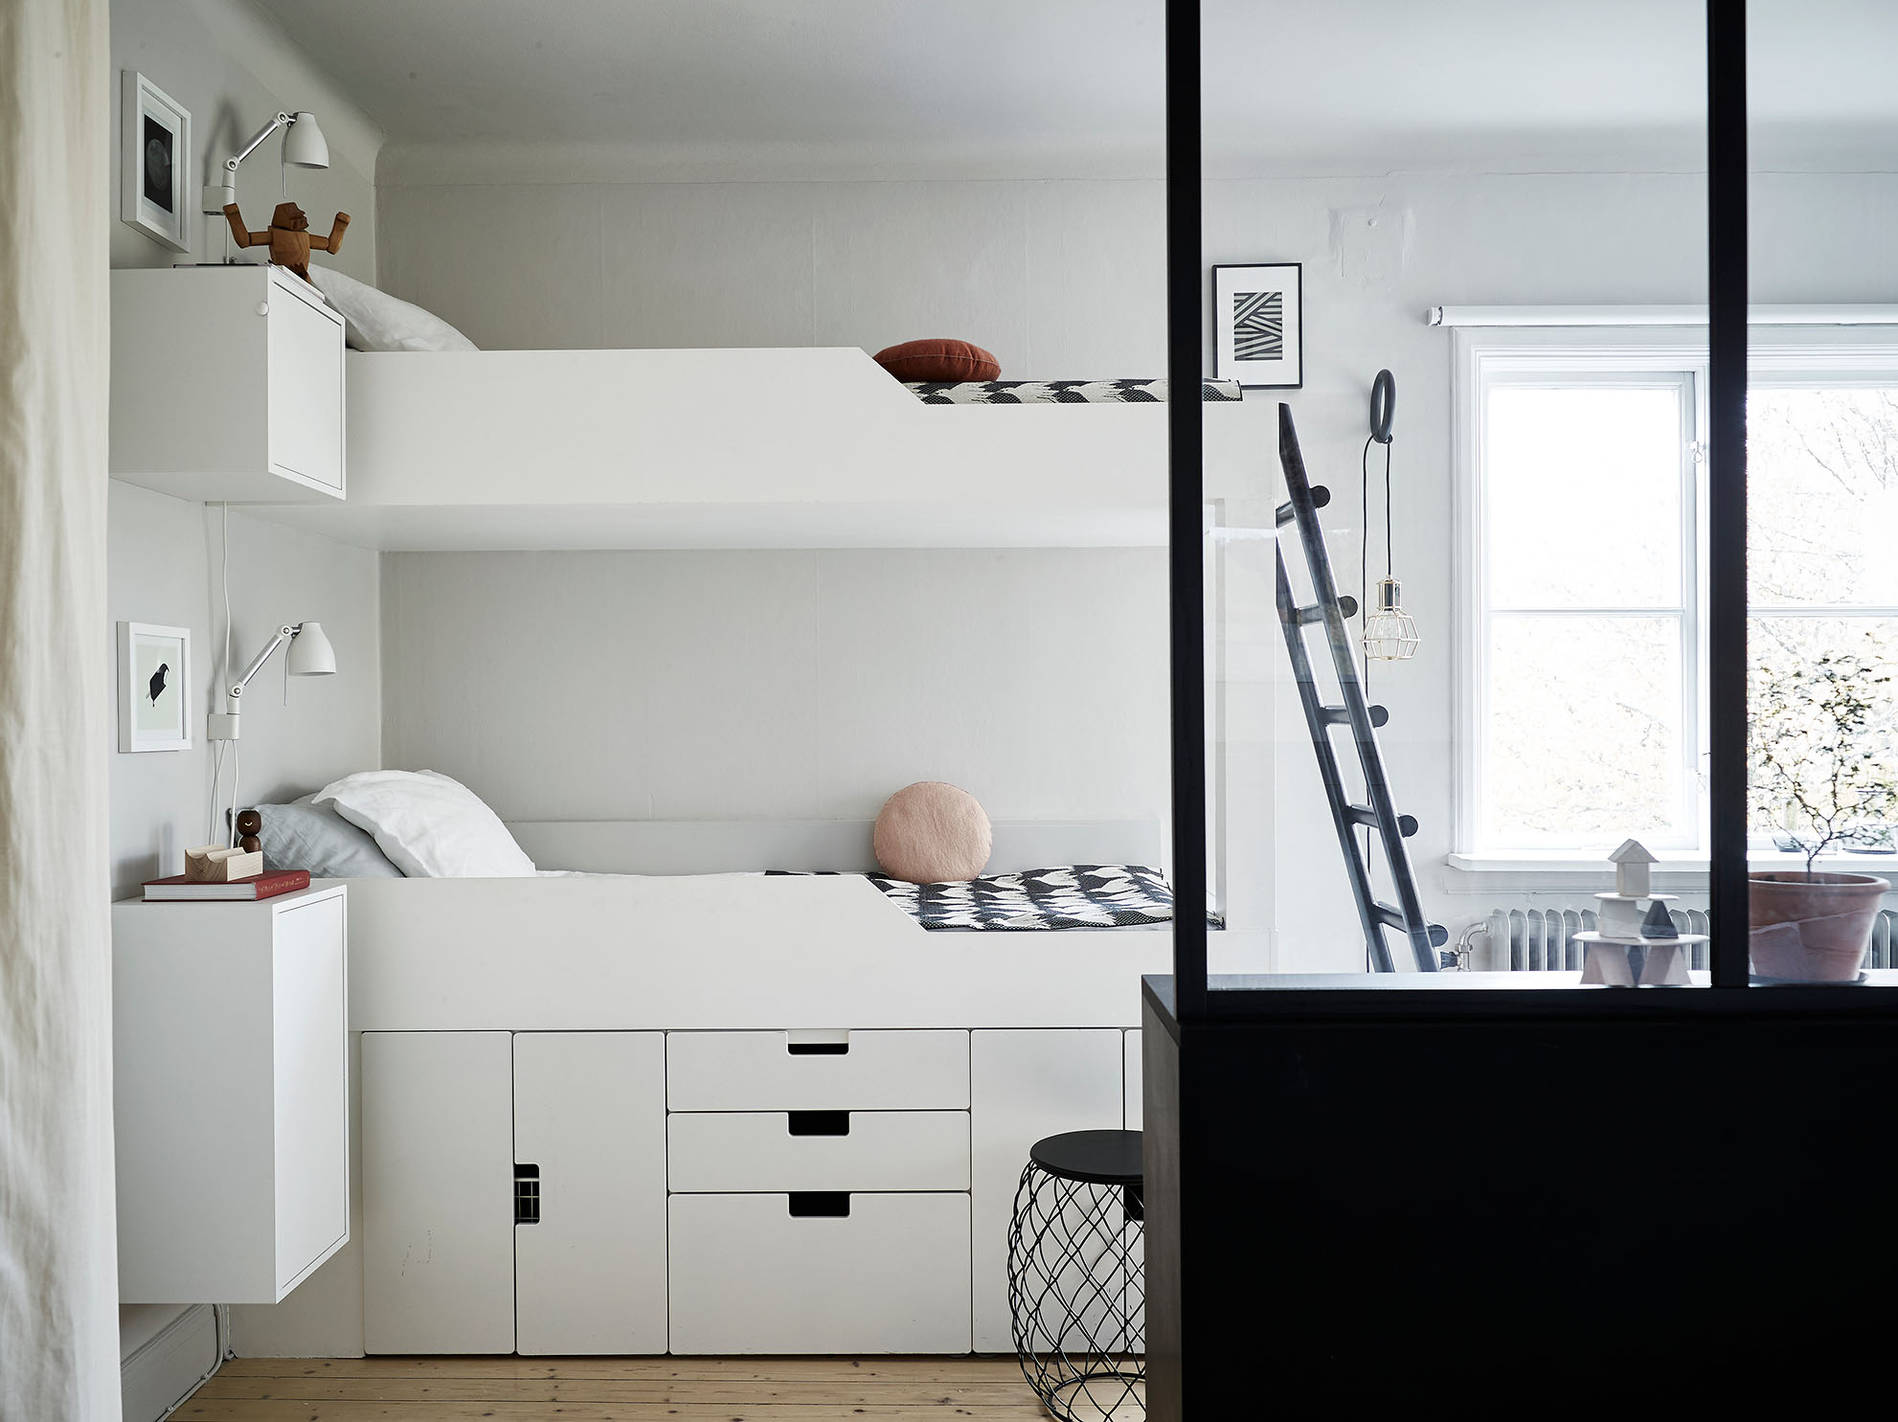 interieur kids gedeelde kinderkamer inrichten tips. Black Bedroom Furniture Sets. Home Design Ideas